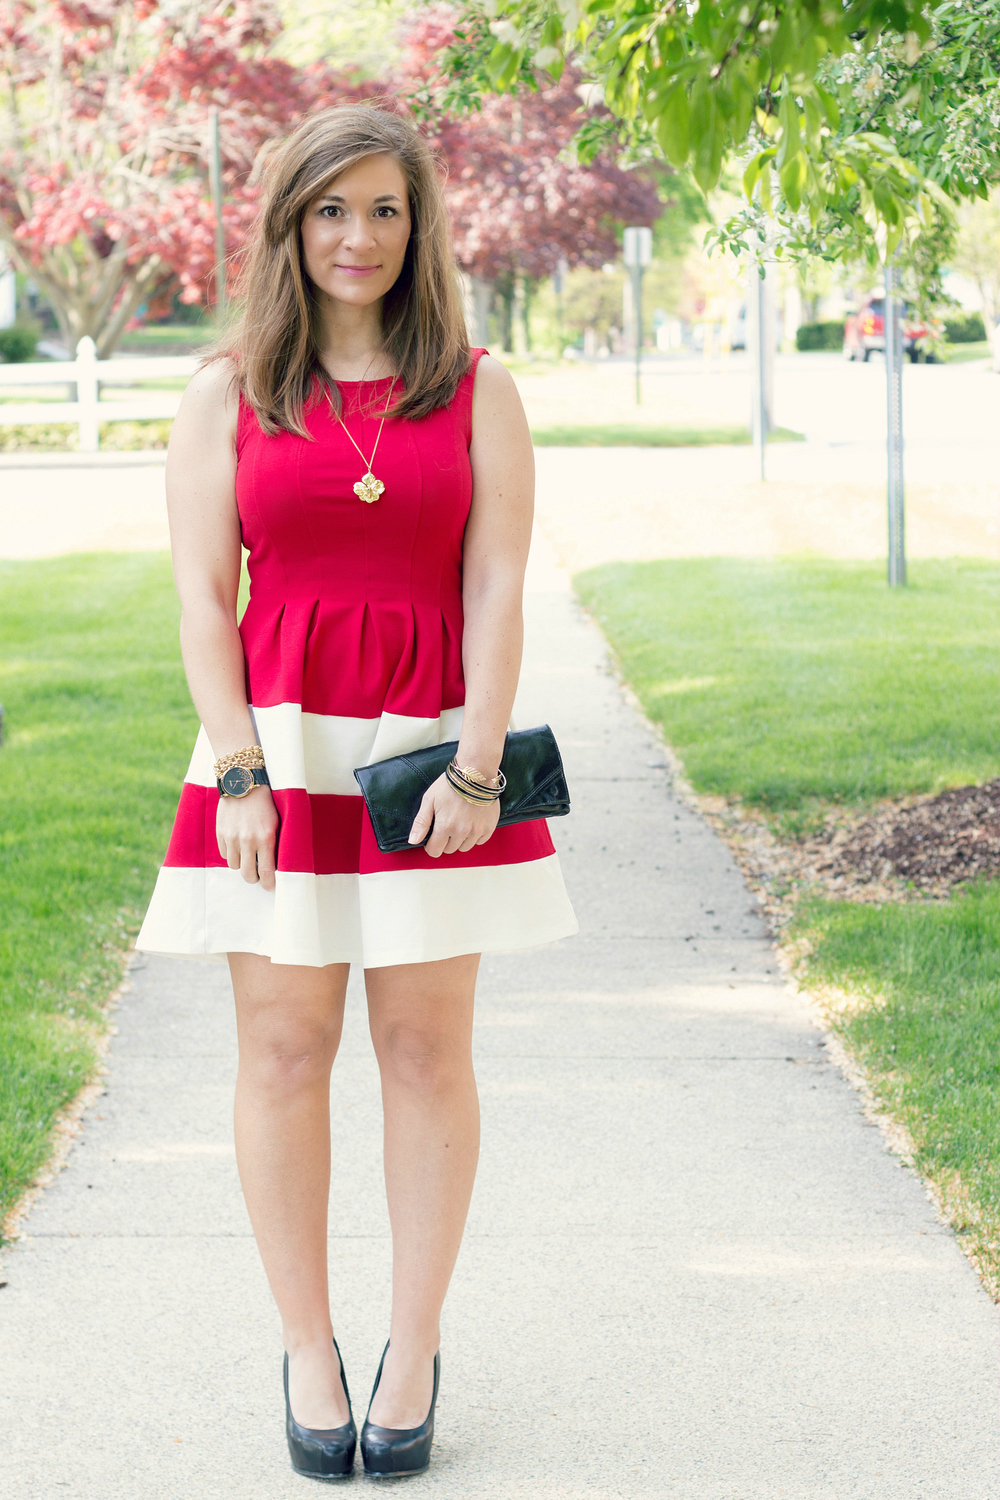 Cute Skater Dresses for Spring